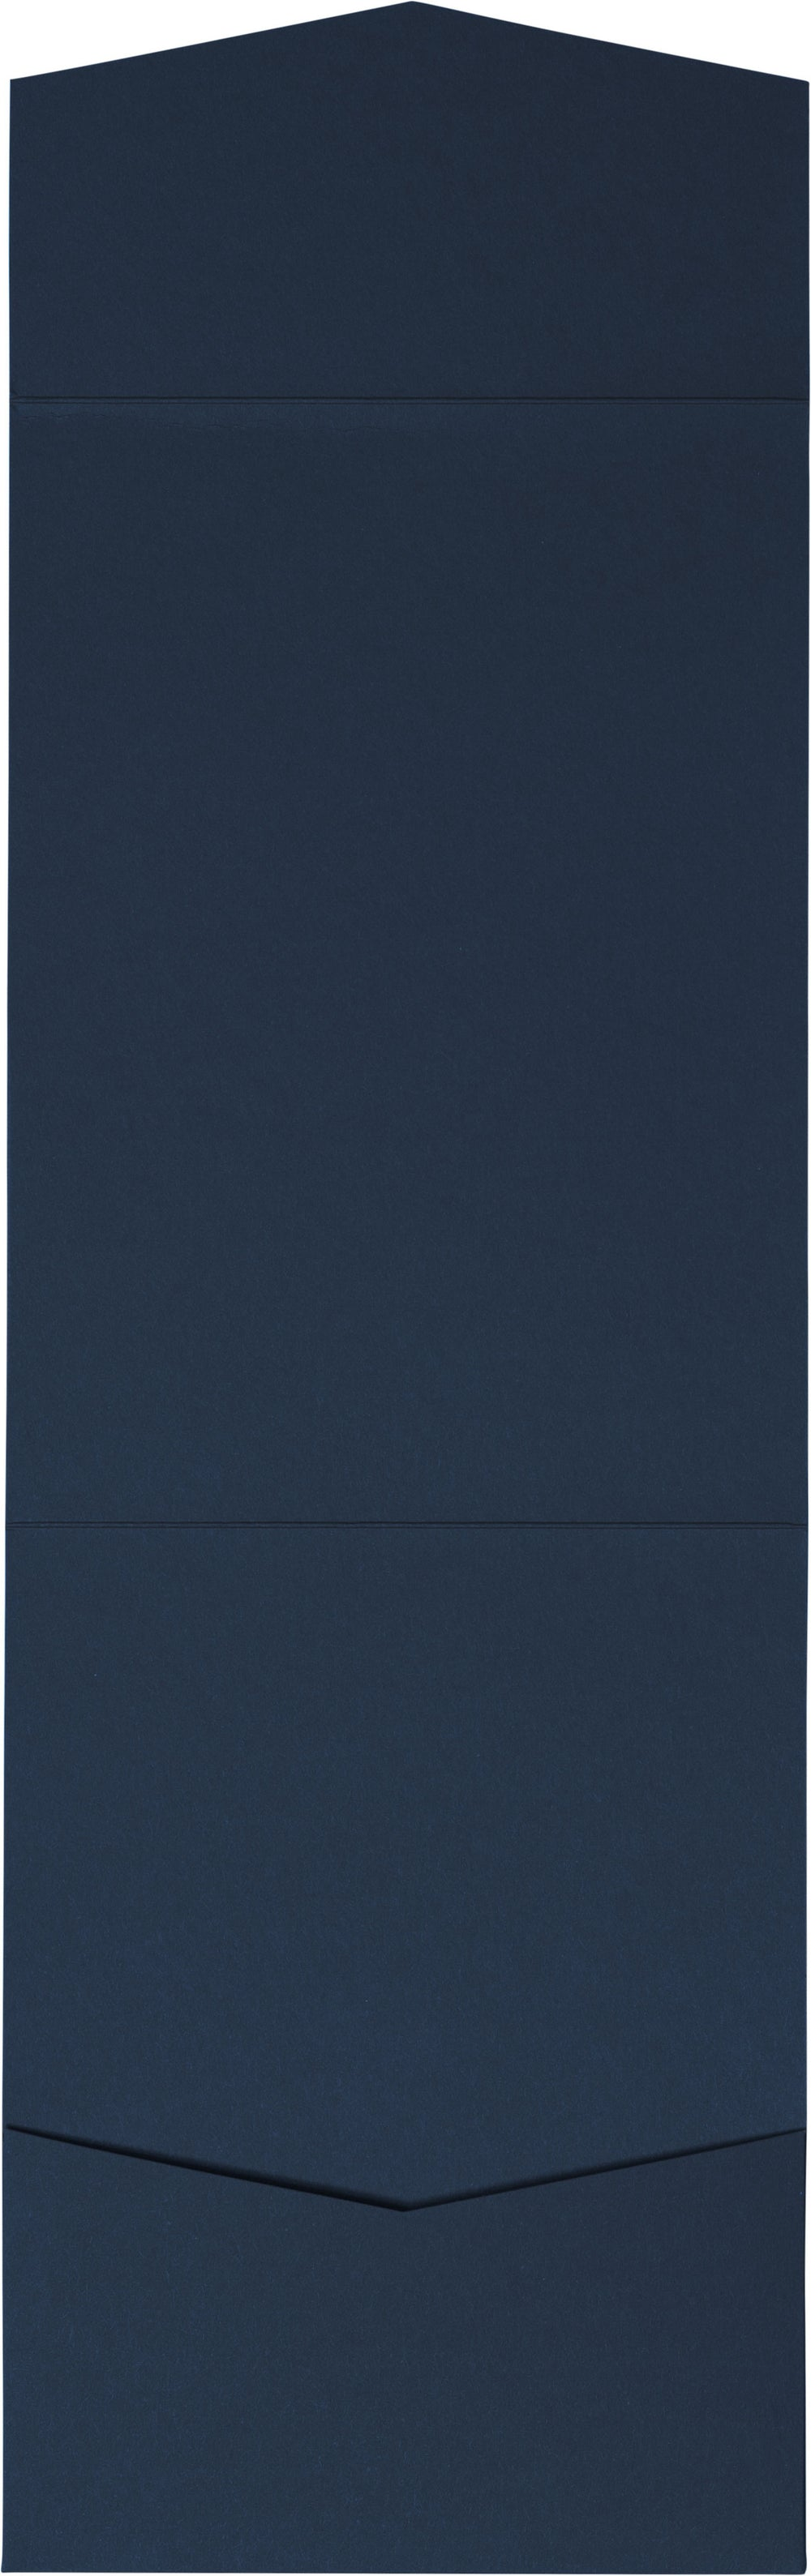 Blazer Blue Solid Pocket Invitation Card, A7 Cascade